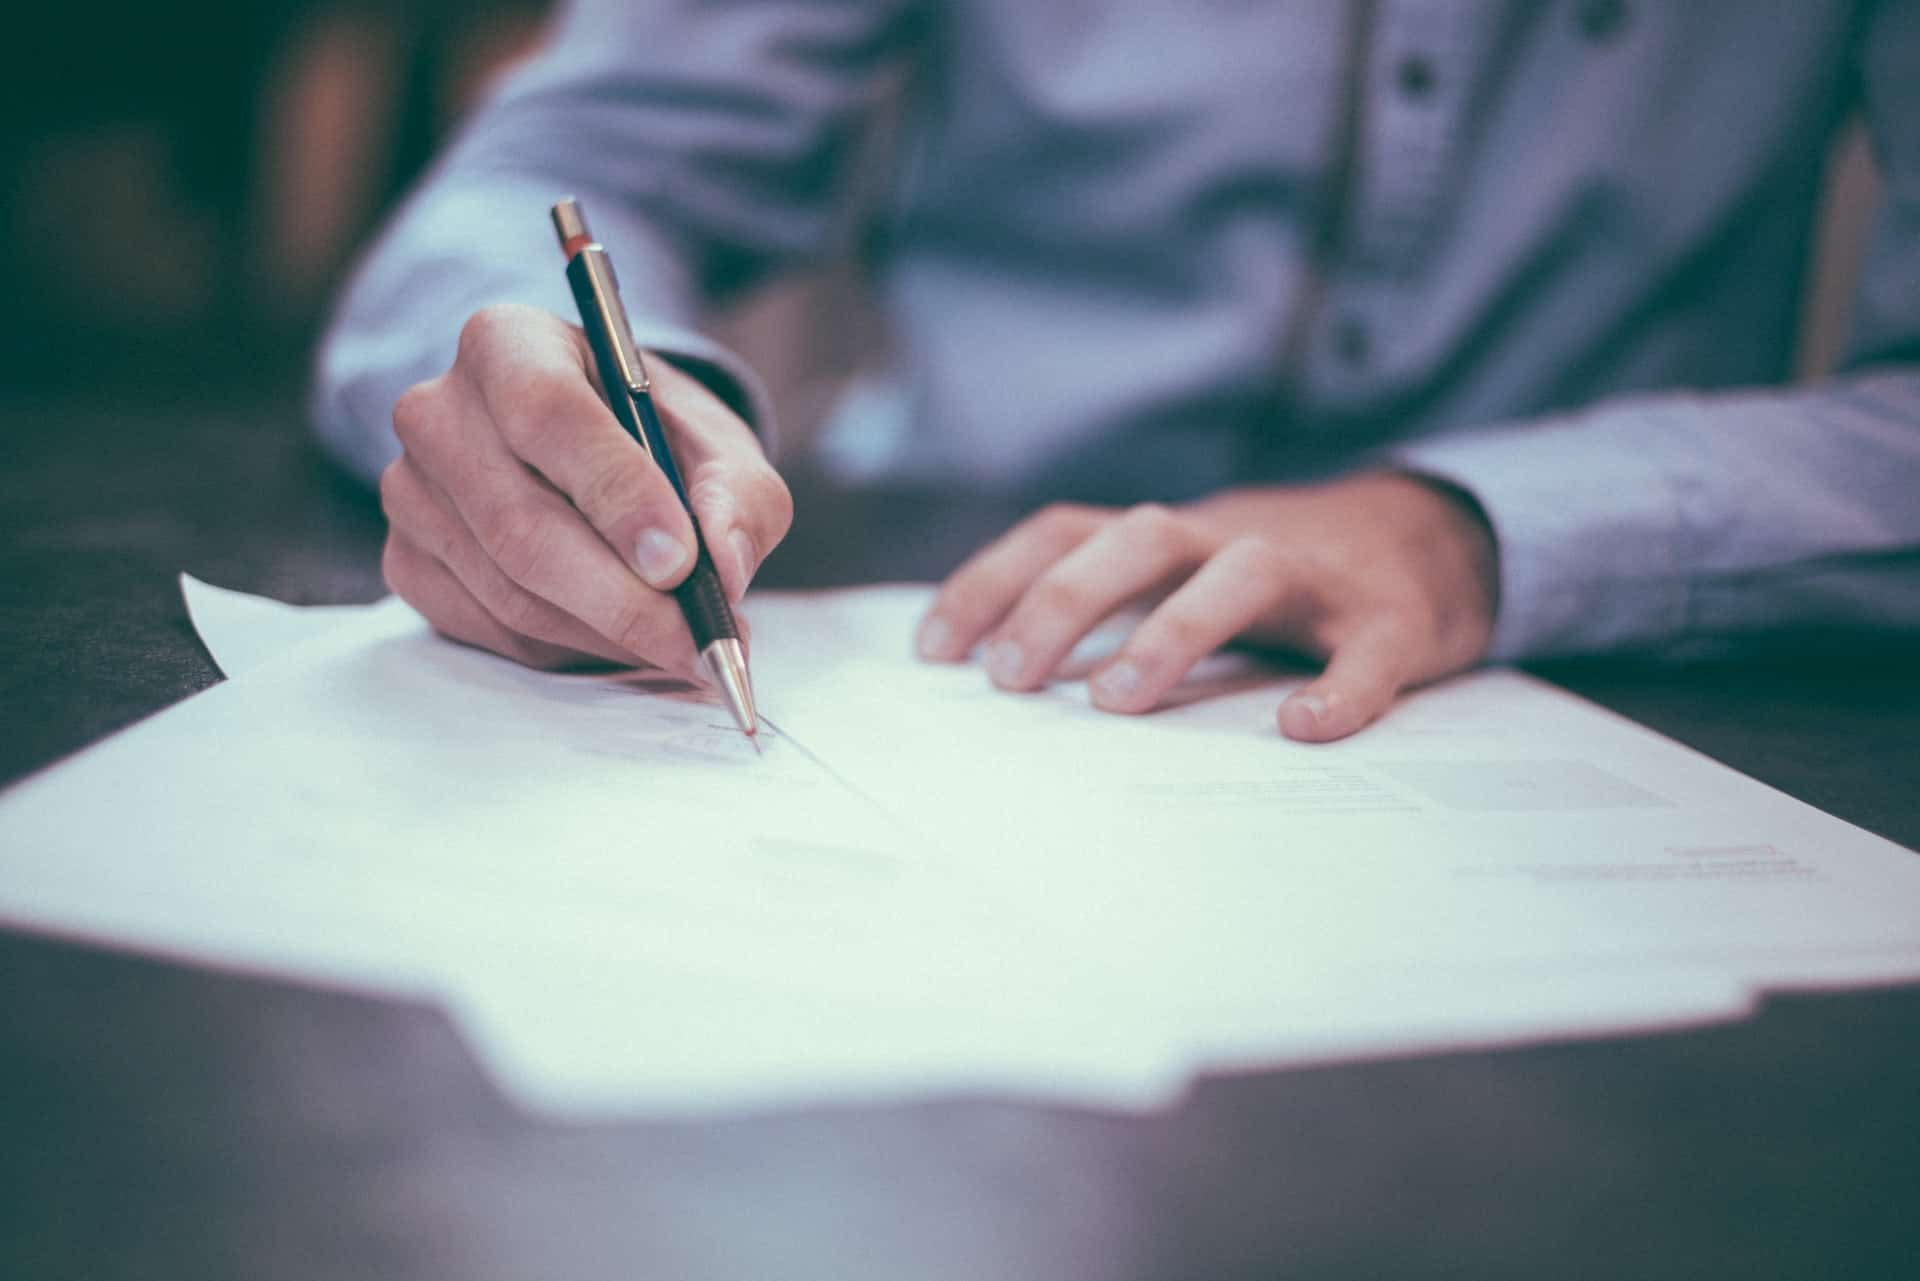 LLC Corporation lawyer sign papers